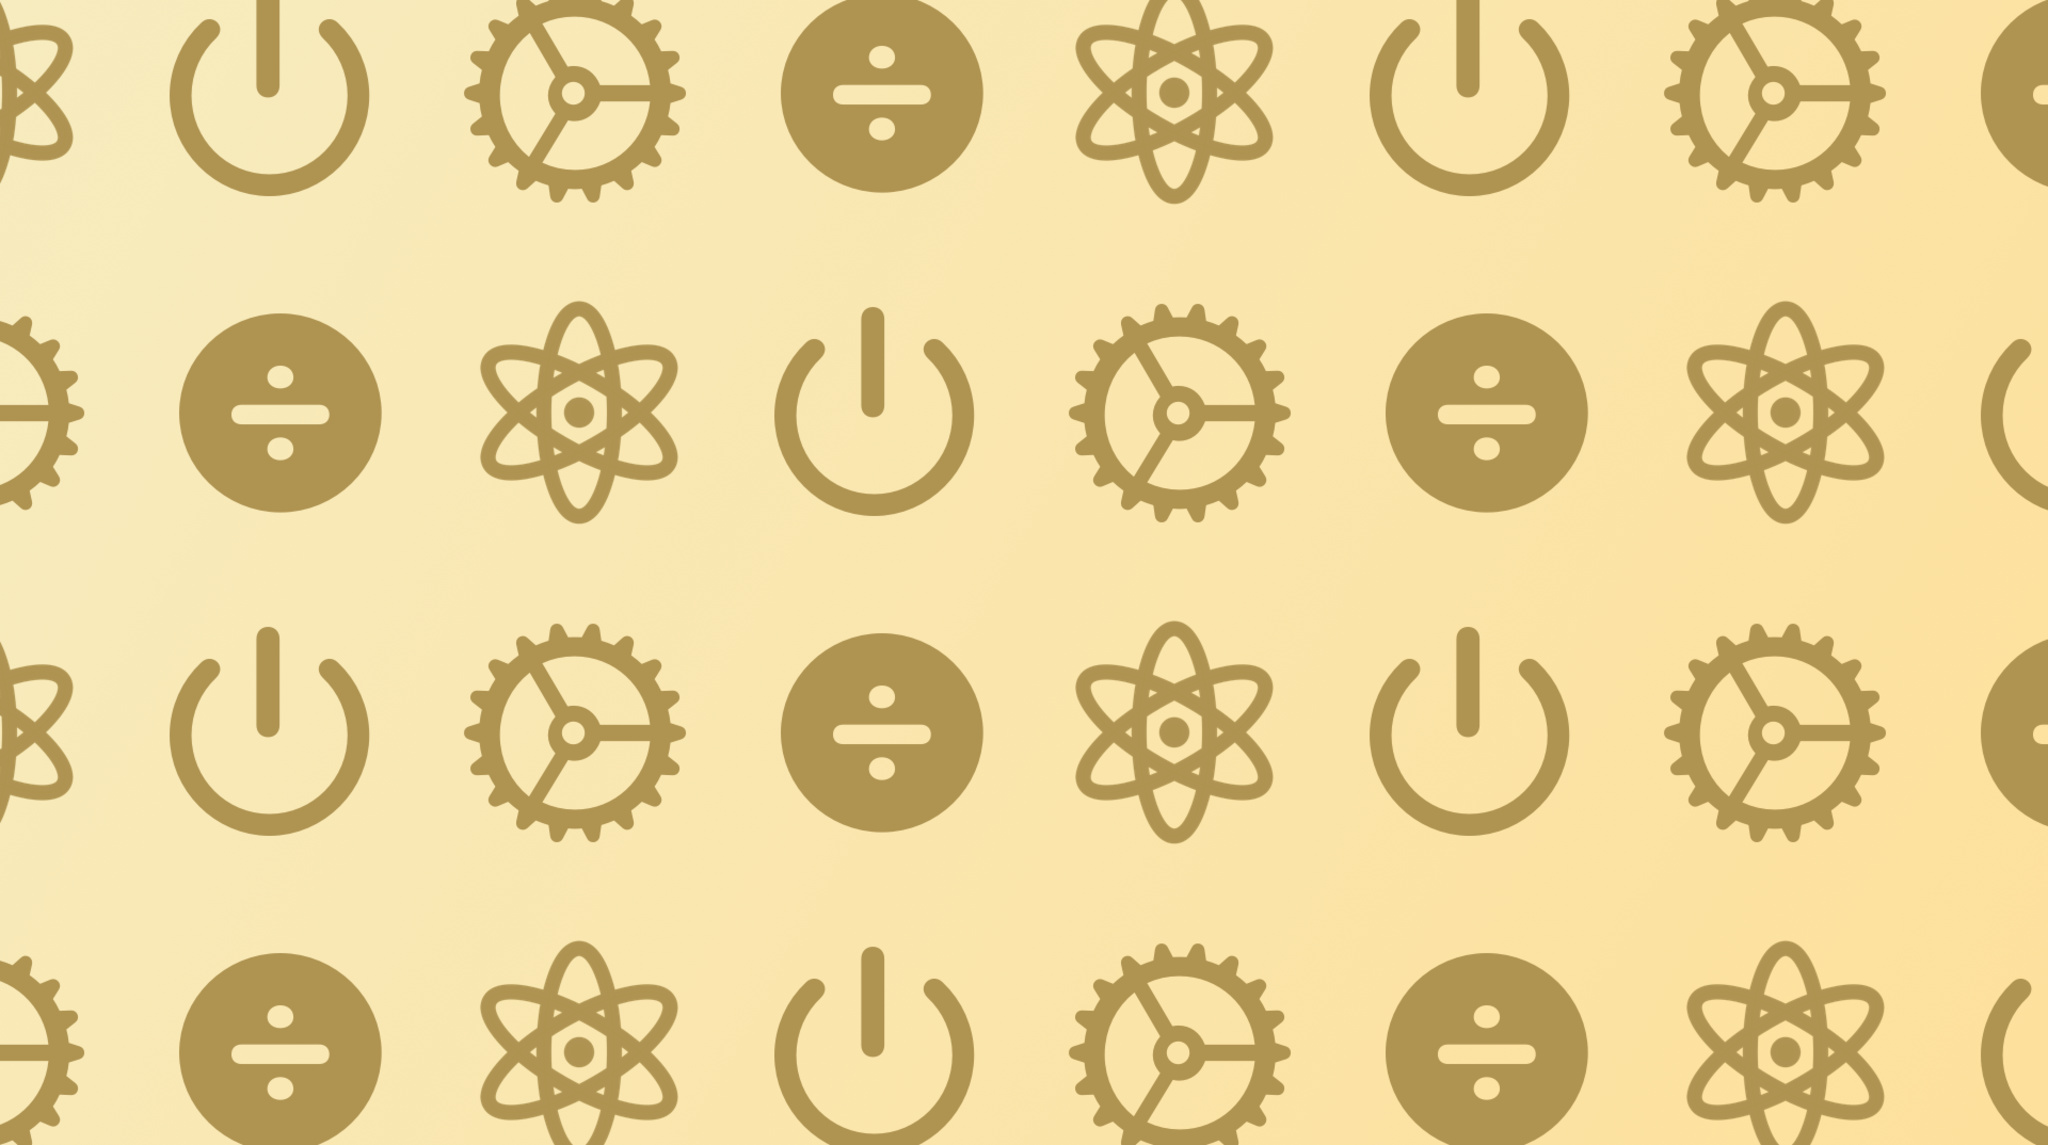 Science, math, gears, power up icons on a yellow background